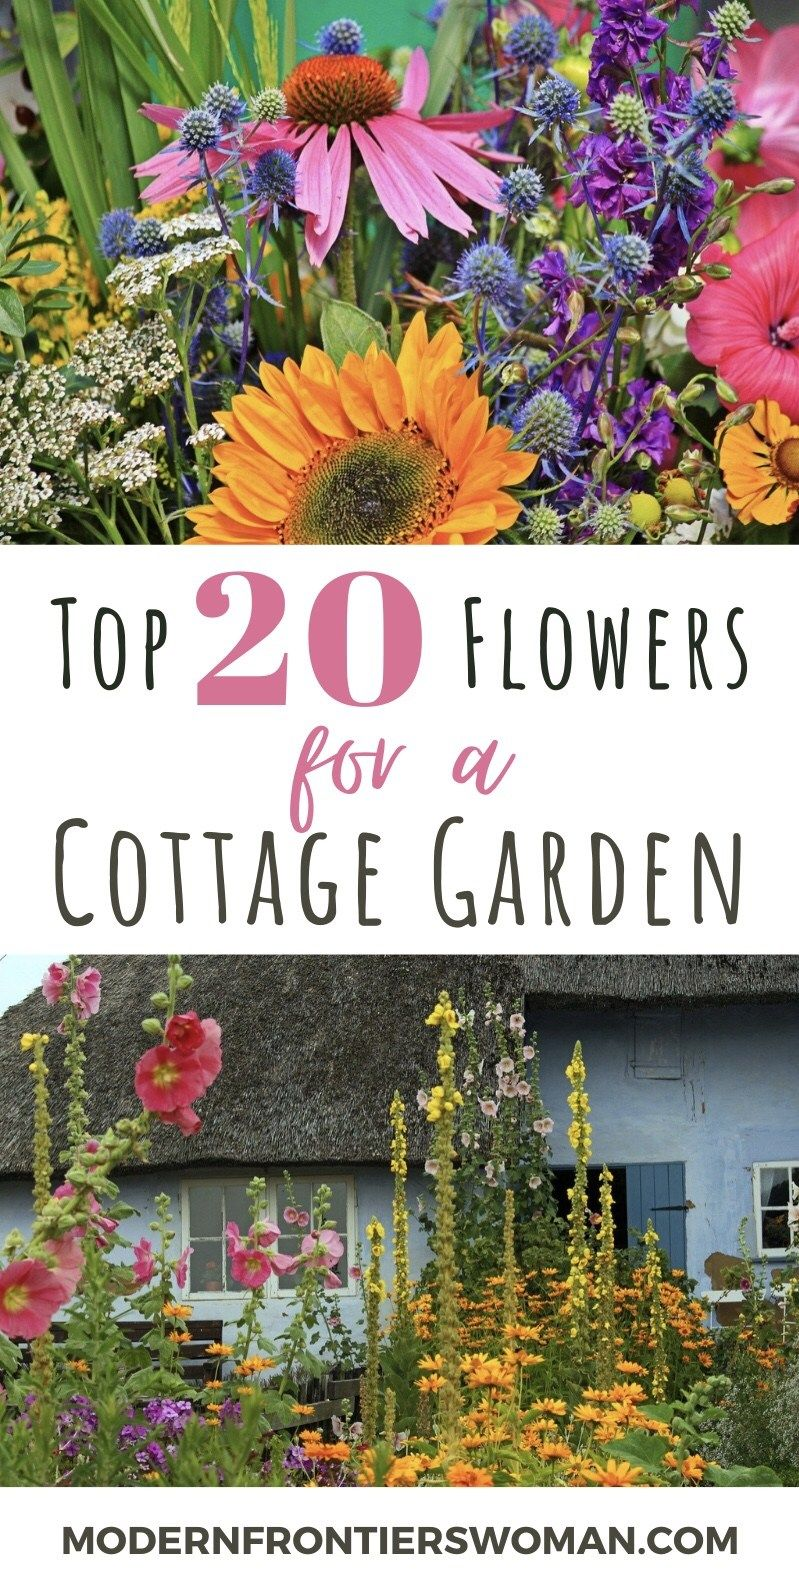 With height, bloom time and color in mind, you can create an enchanting cottage garden with ease. Your hard work will be repaid with a low maintenance masterpiece you can enjoy year after year. Plus your vegetable garden will thank you for all the added pollination it receives from the bees and butterflies that flock to your flowers.